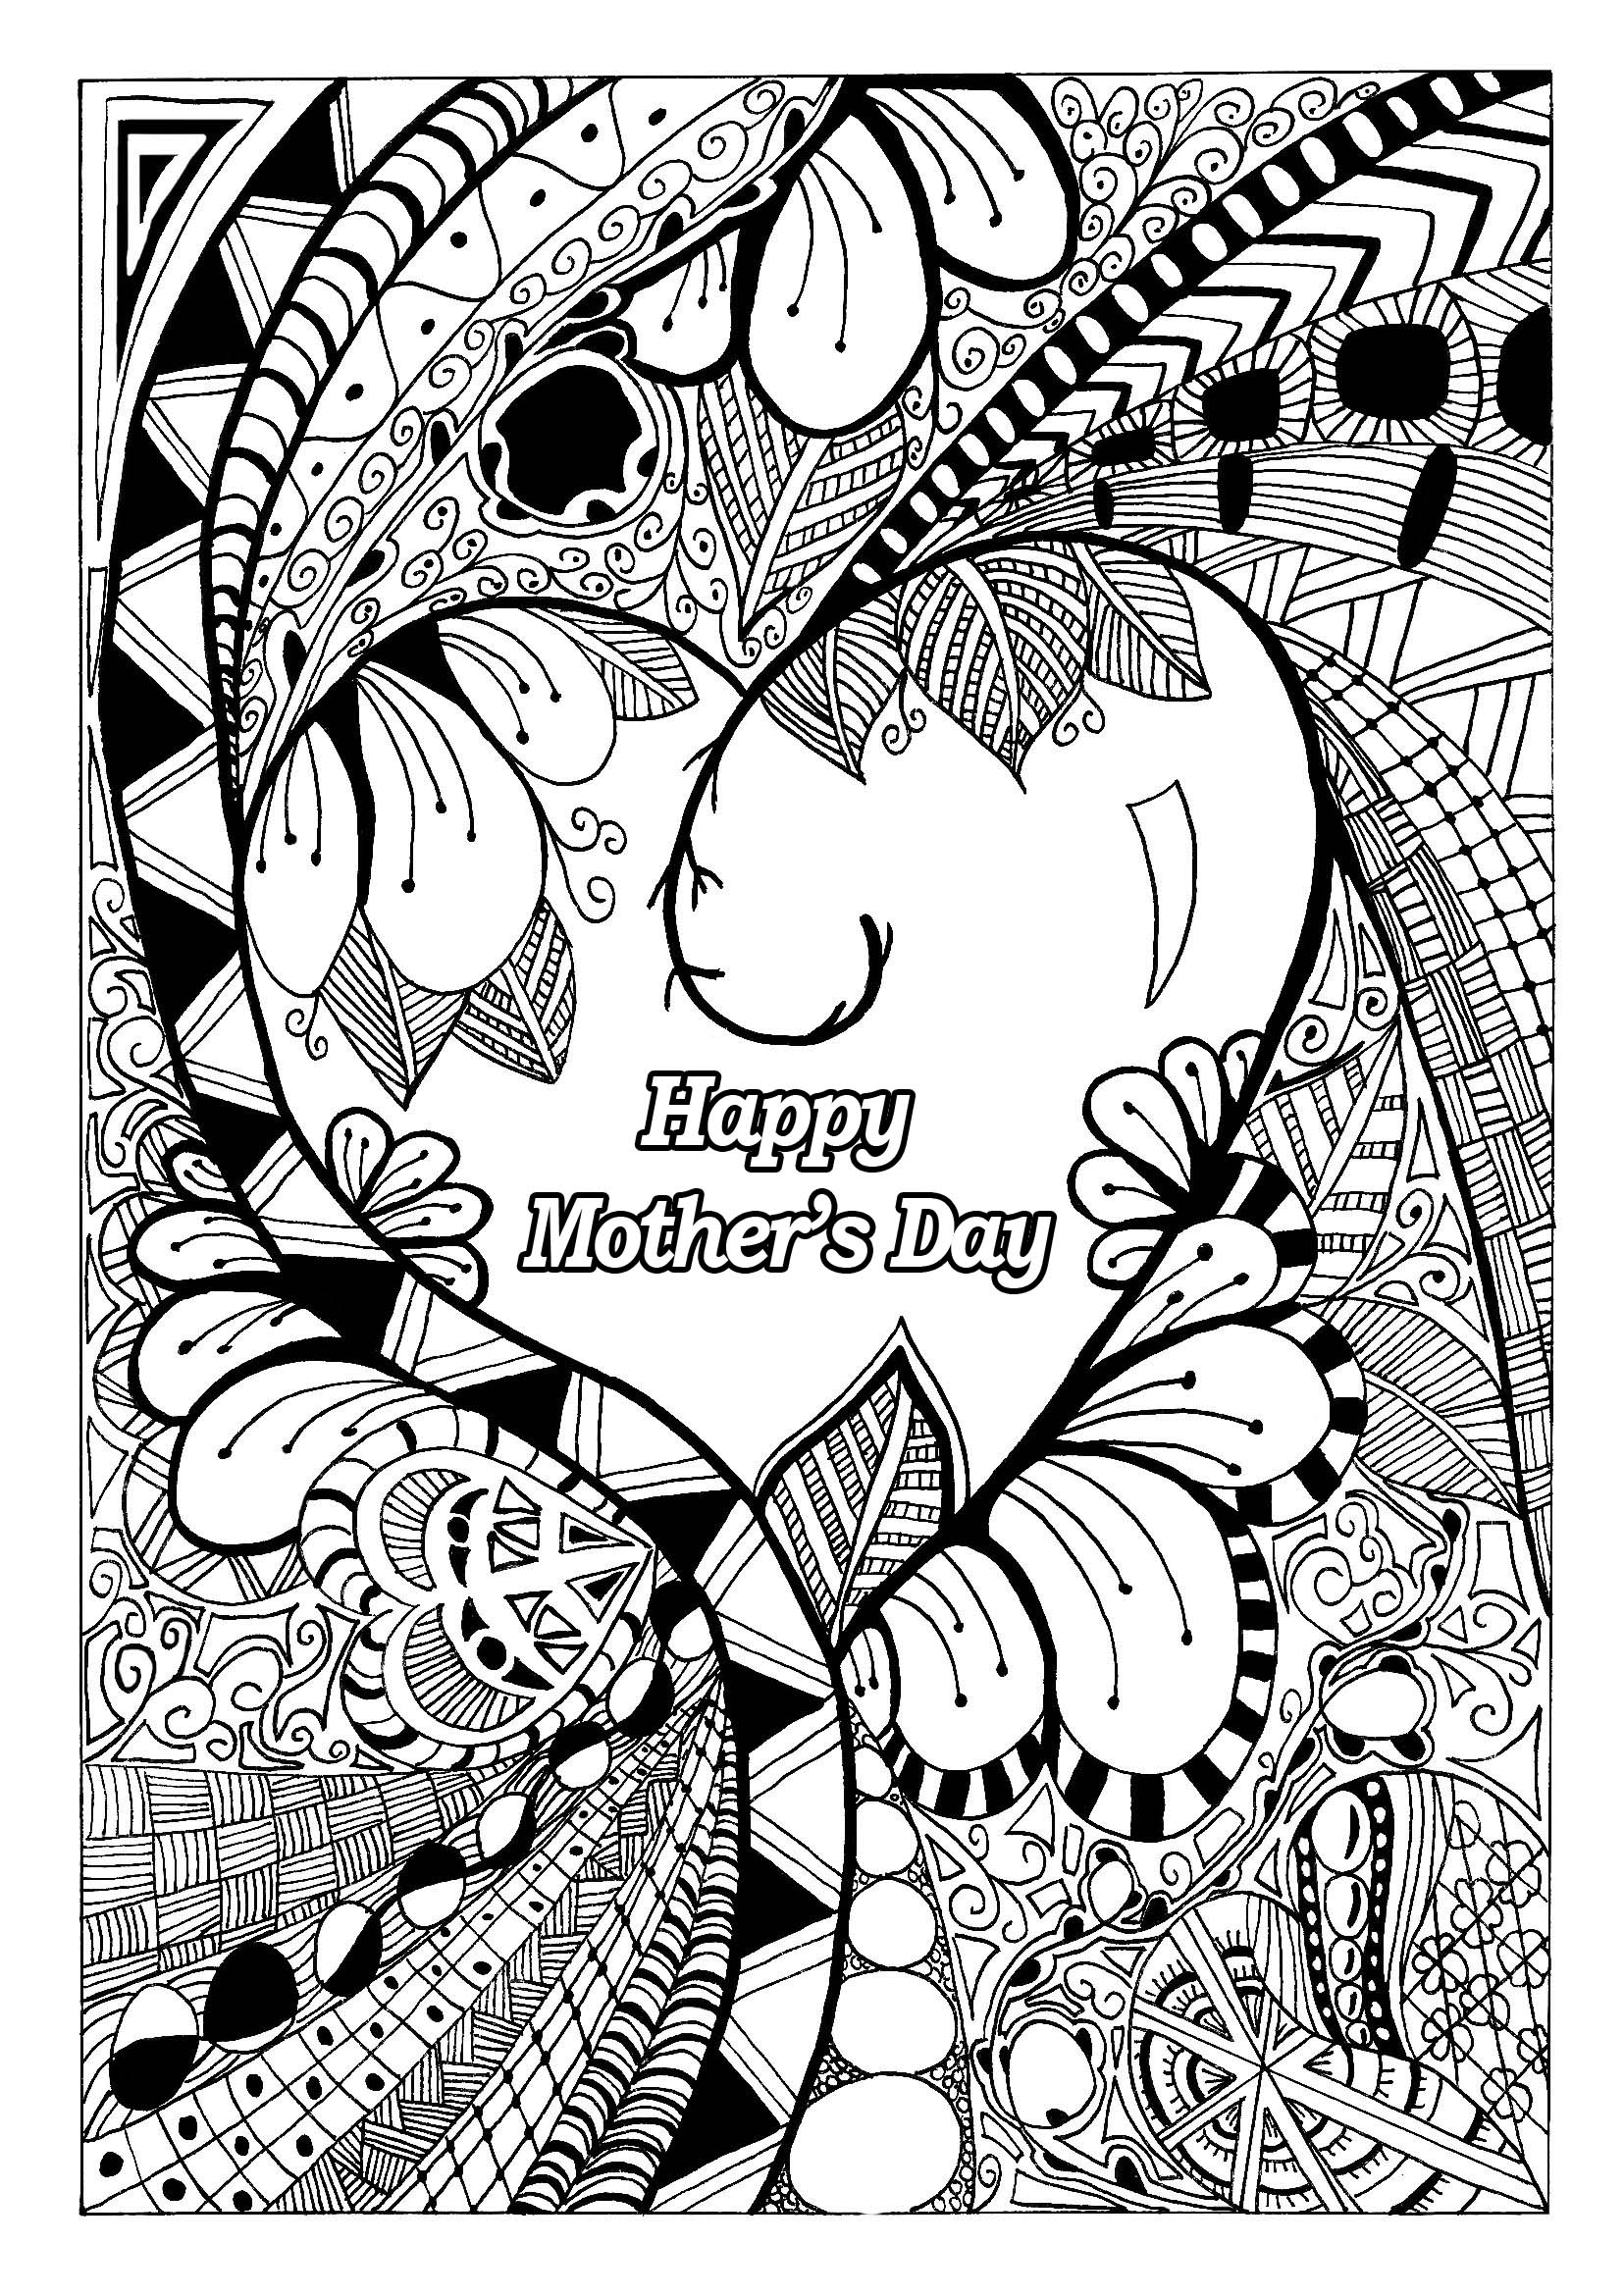 mothers day coloring pages for adults Mother s day 1   Mother's Day Adult Coloring Pages mothers day coloring pages for adults